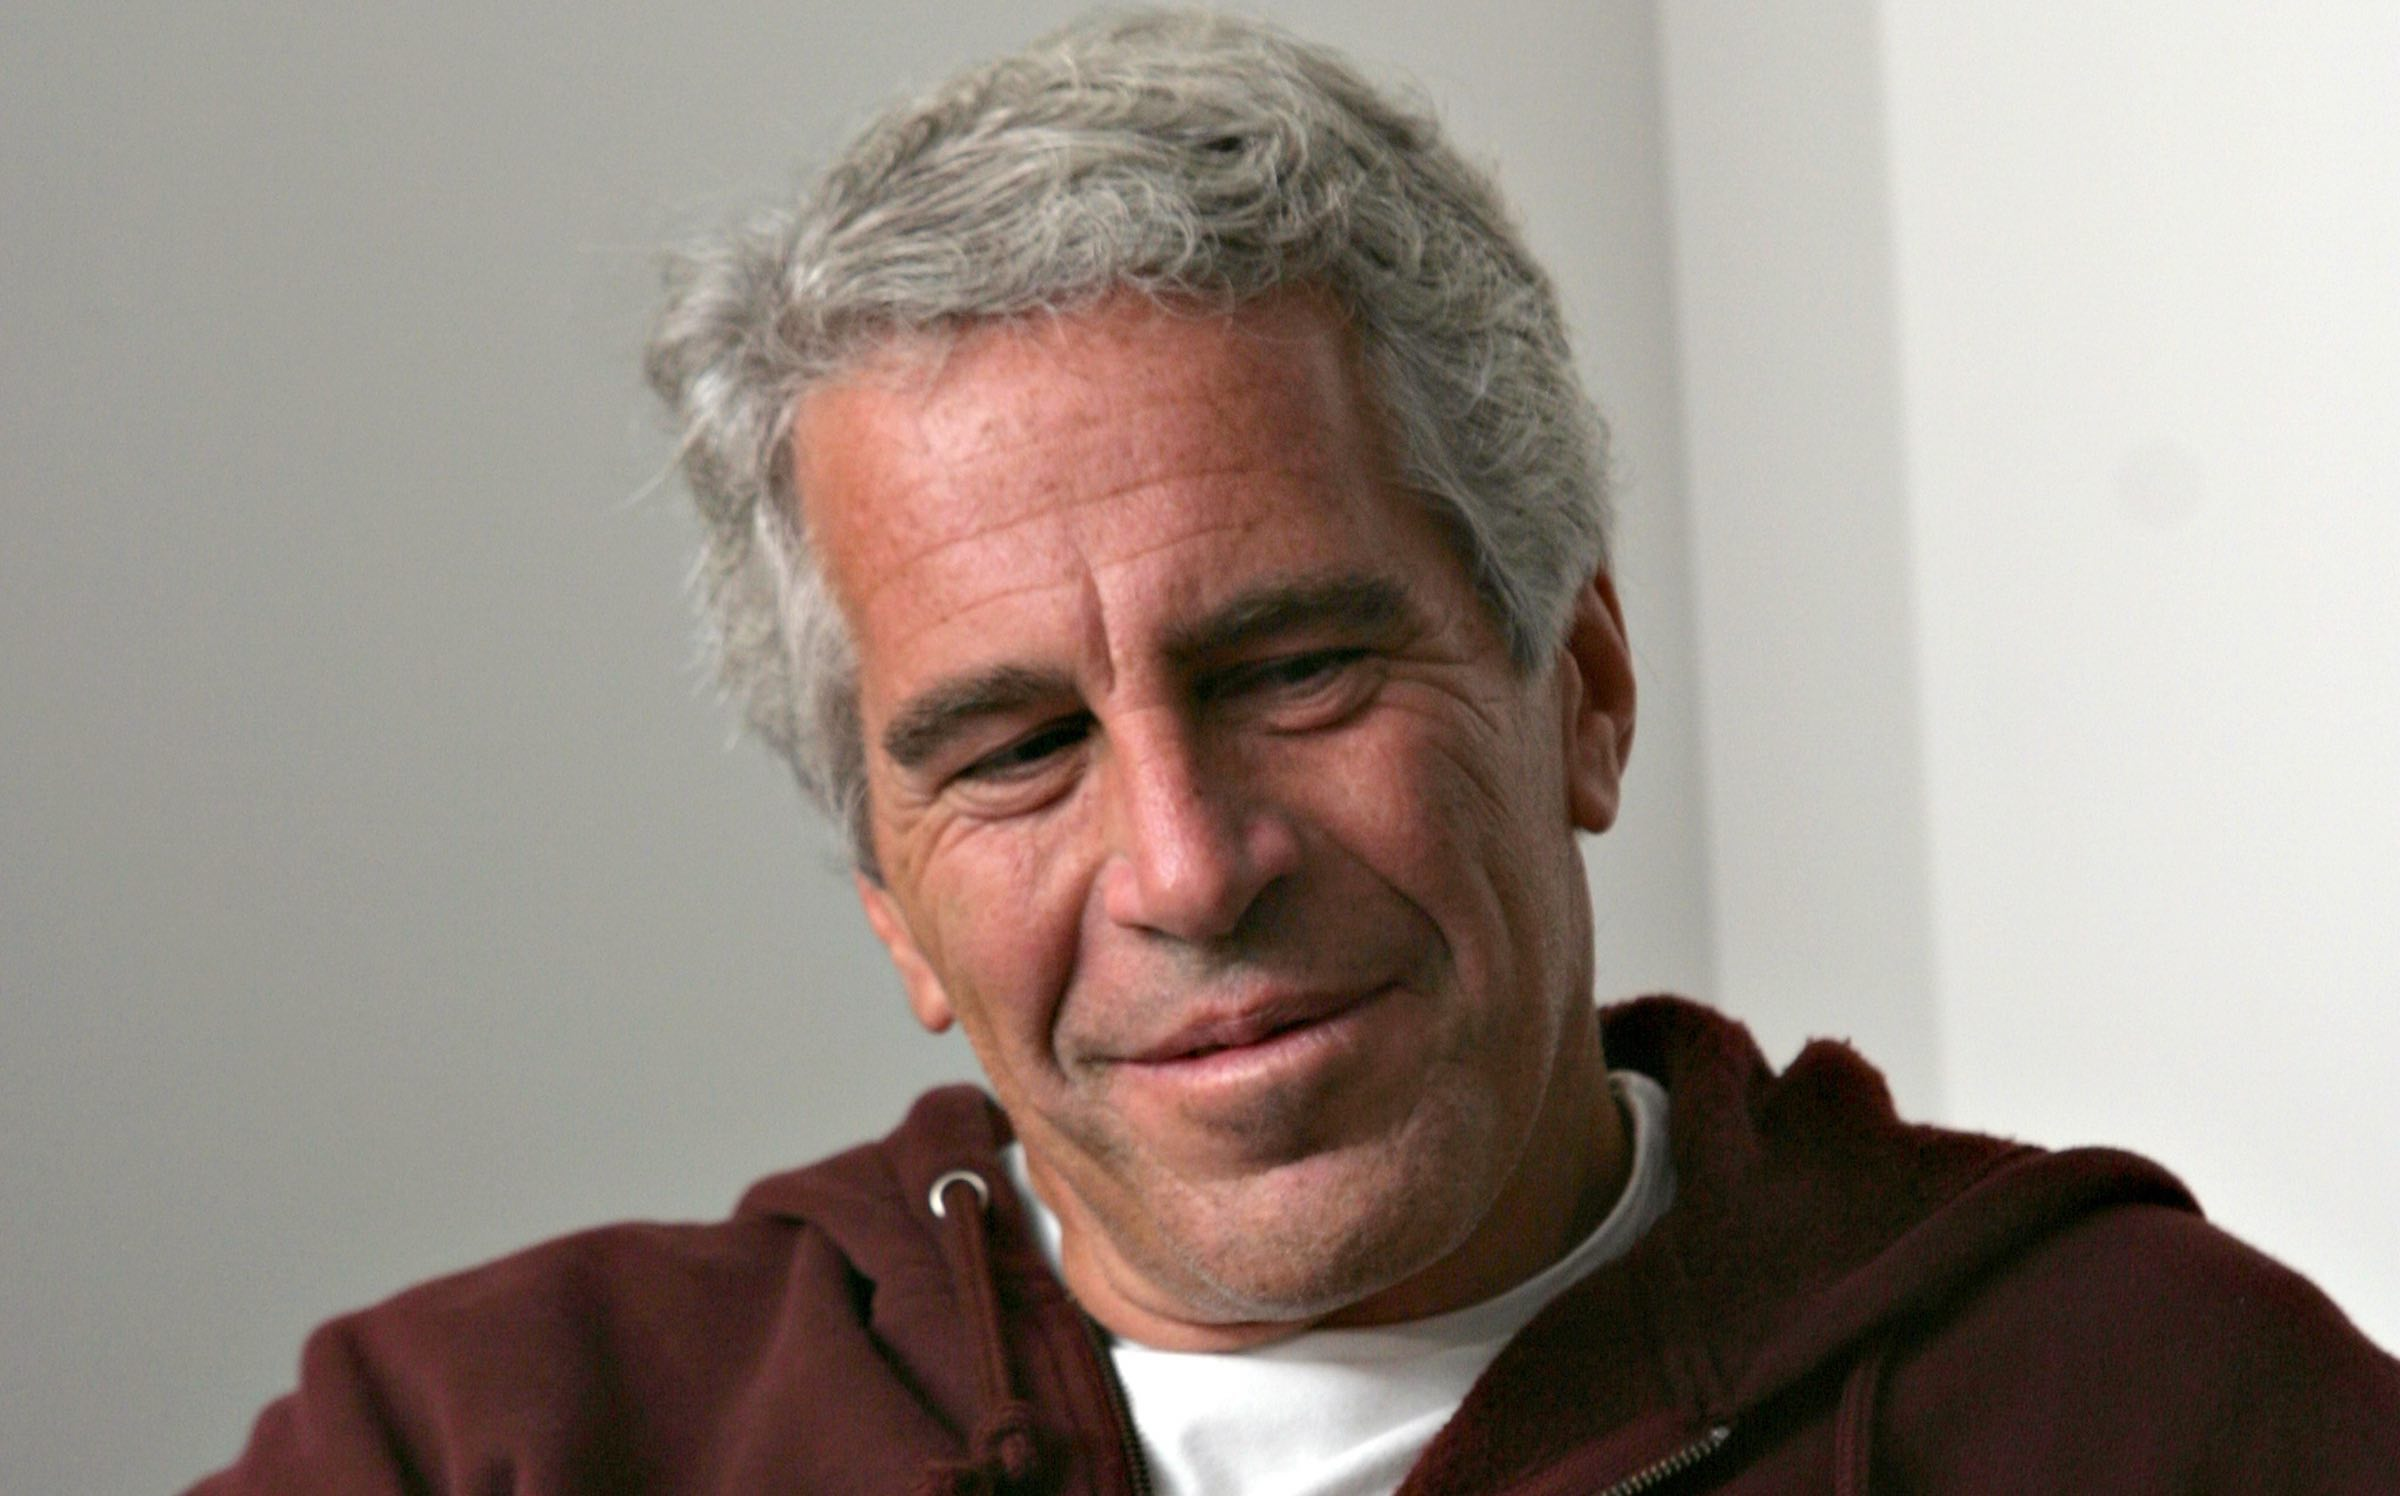 After the mogul died in 2019, the question remained: Who was in control of Jeffrey Epstein's giant fortune? The net worth is a big part of Epstein's case.